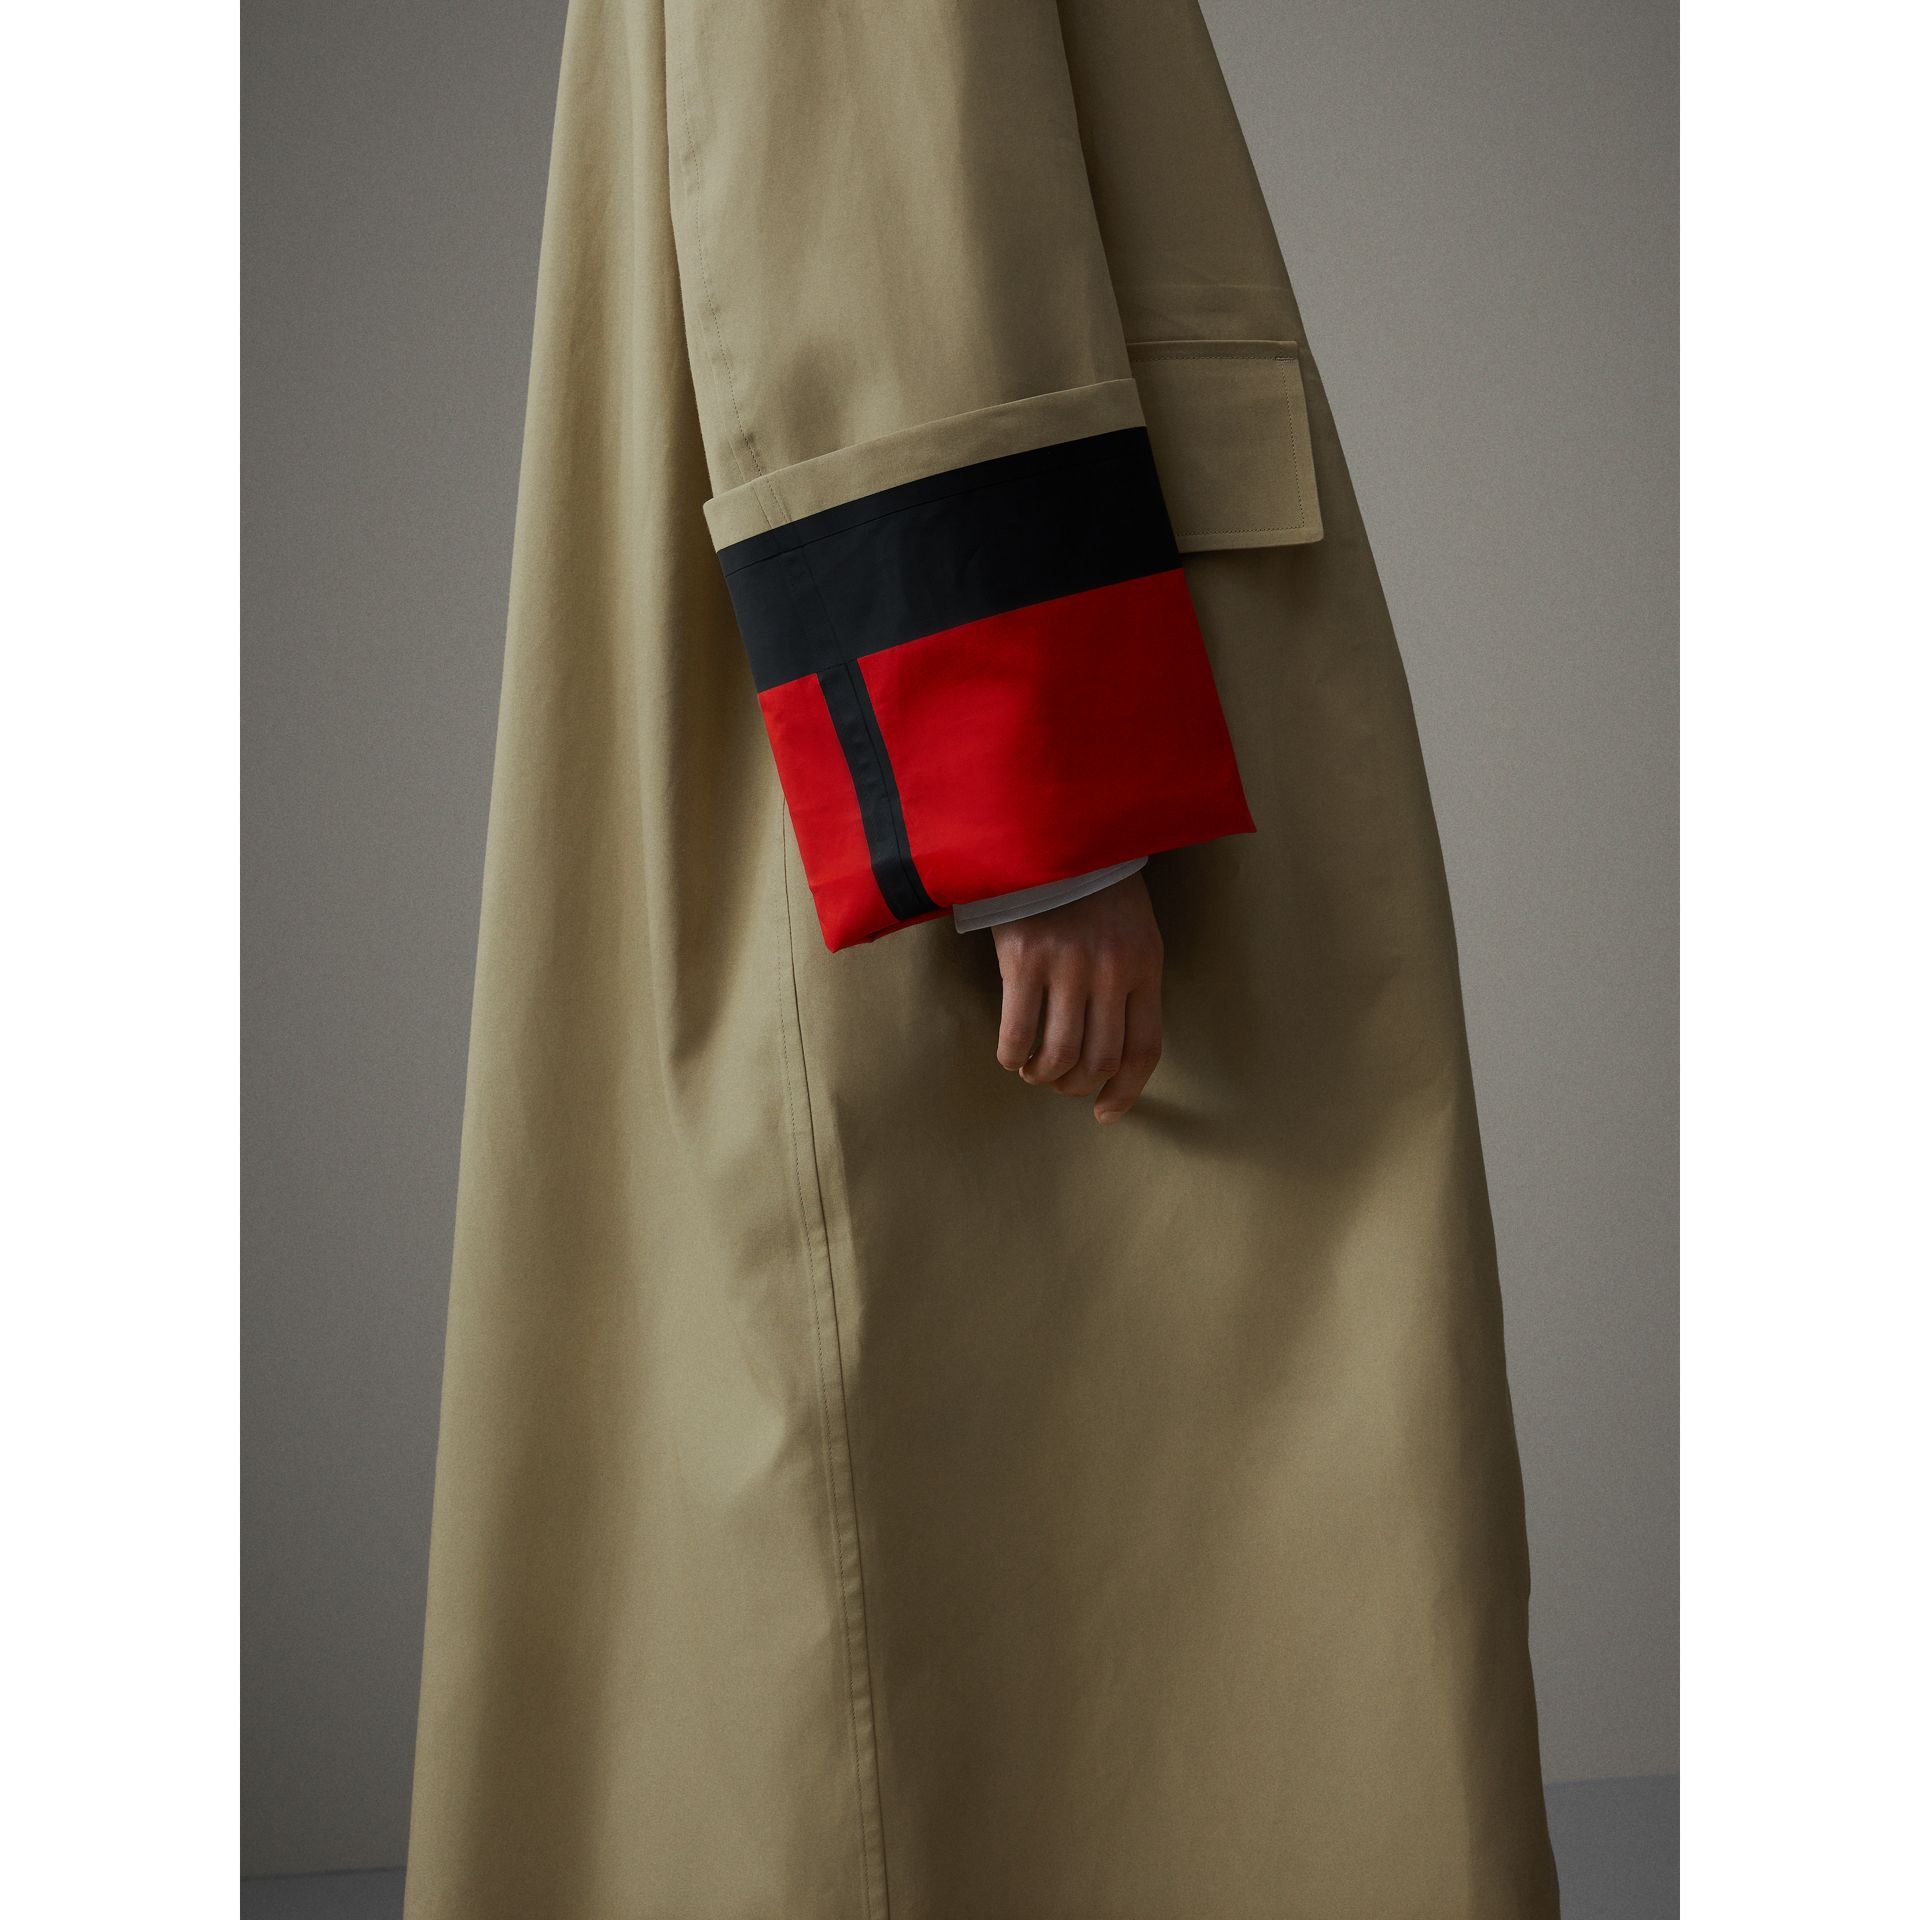 Bonded Cotton Poplin Seam-sealed Car Coat in Beige/red - Women | Burberry - gallery image 2